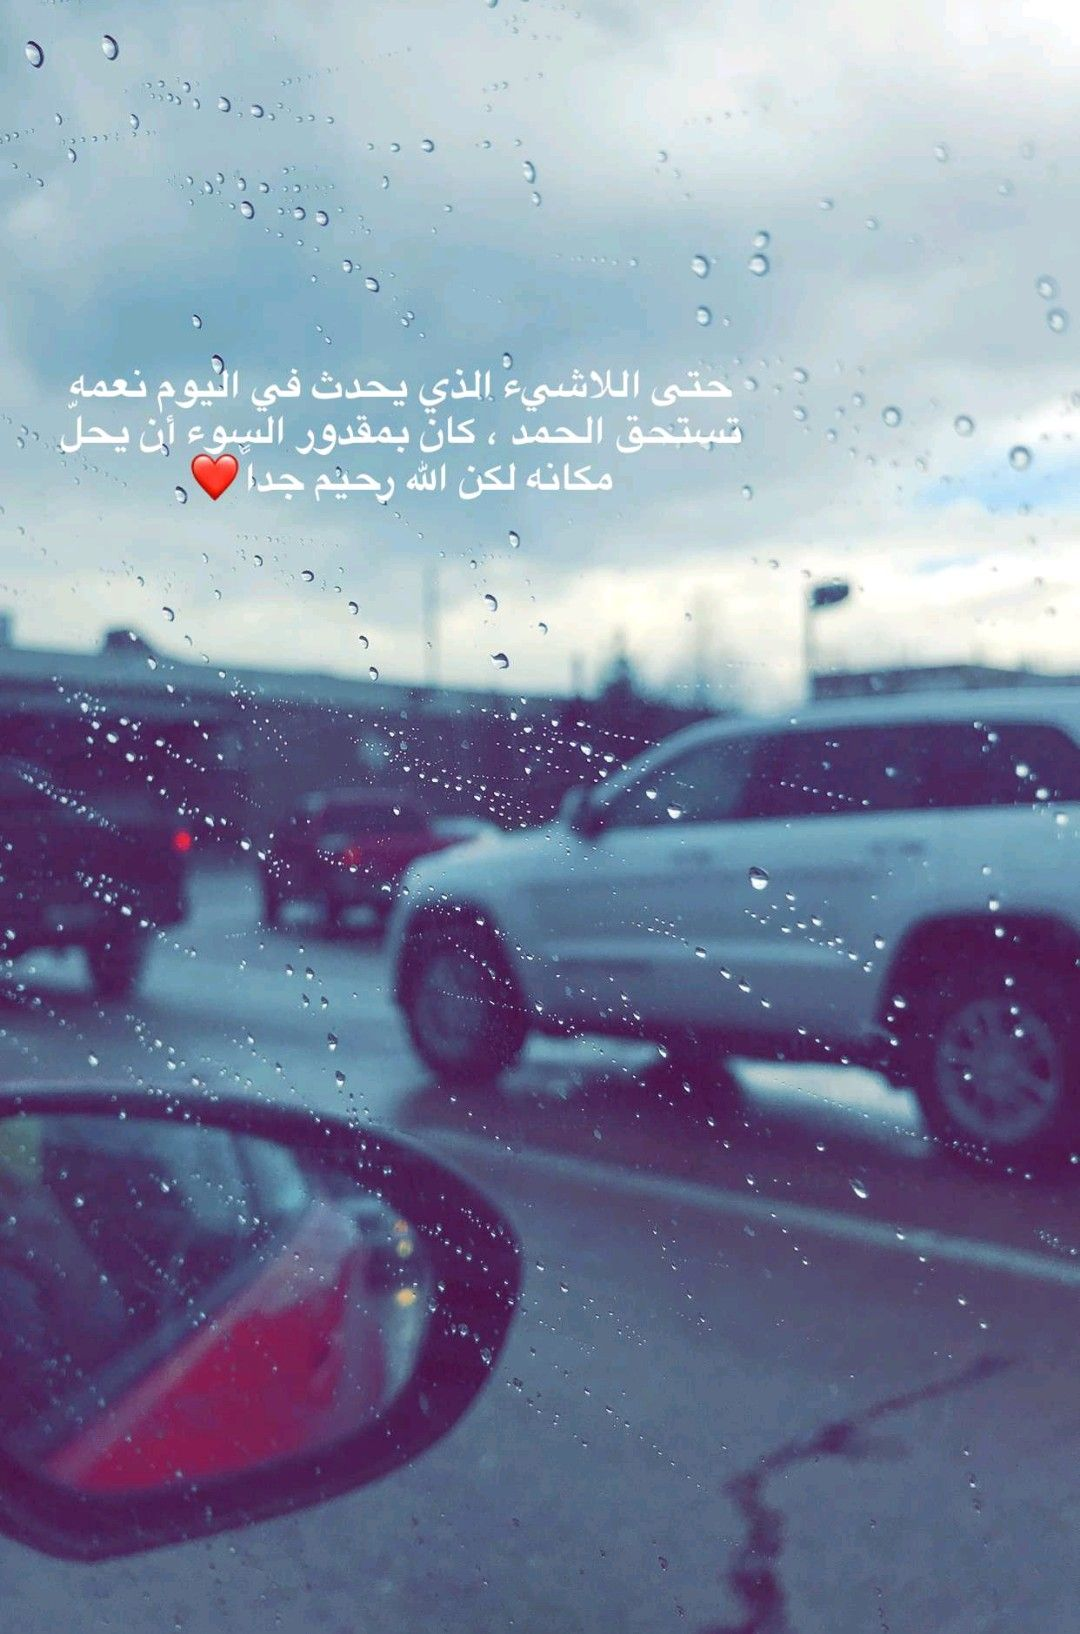 Pin By بنت كيوت On Wisdom Arabic Love Quotes Rain Quotes Photo Quotes